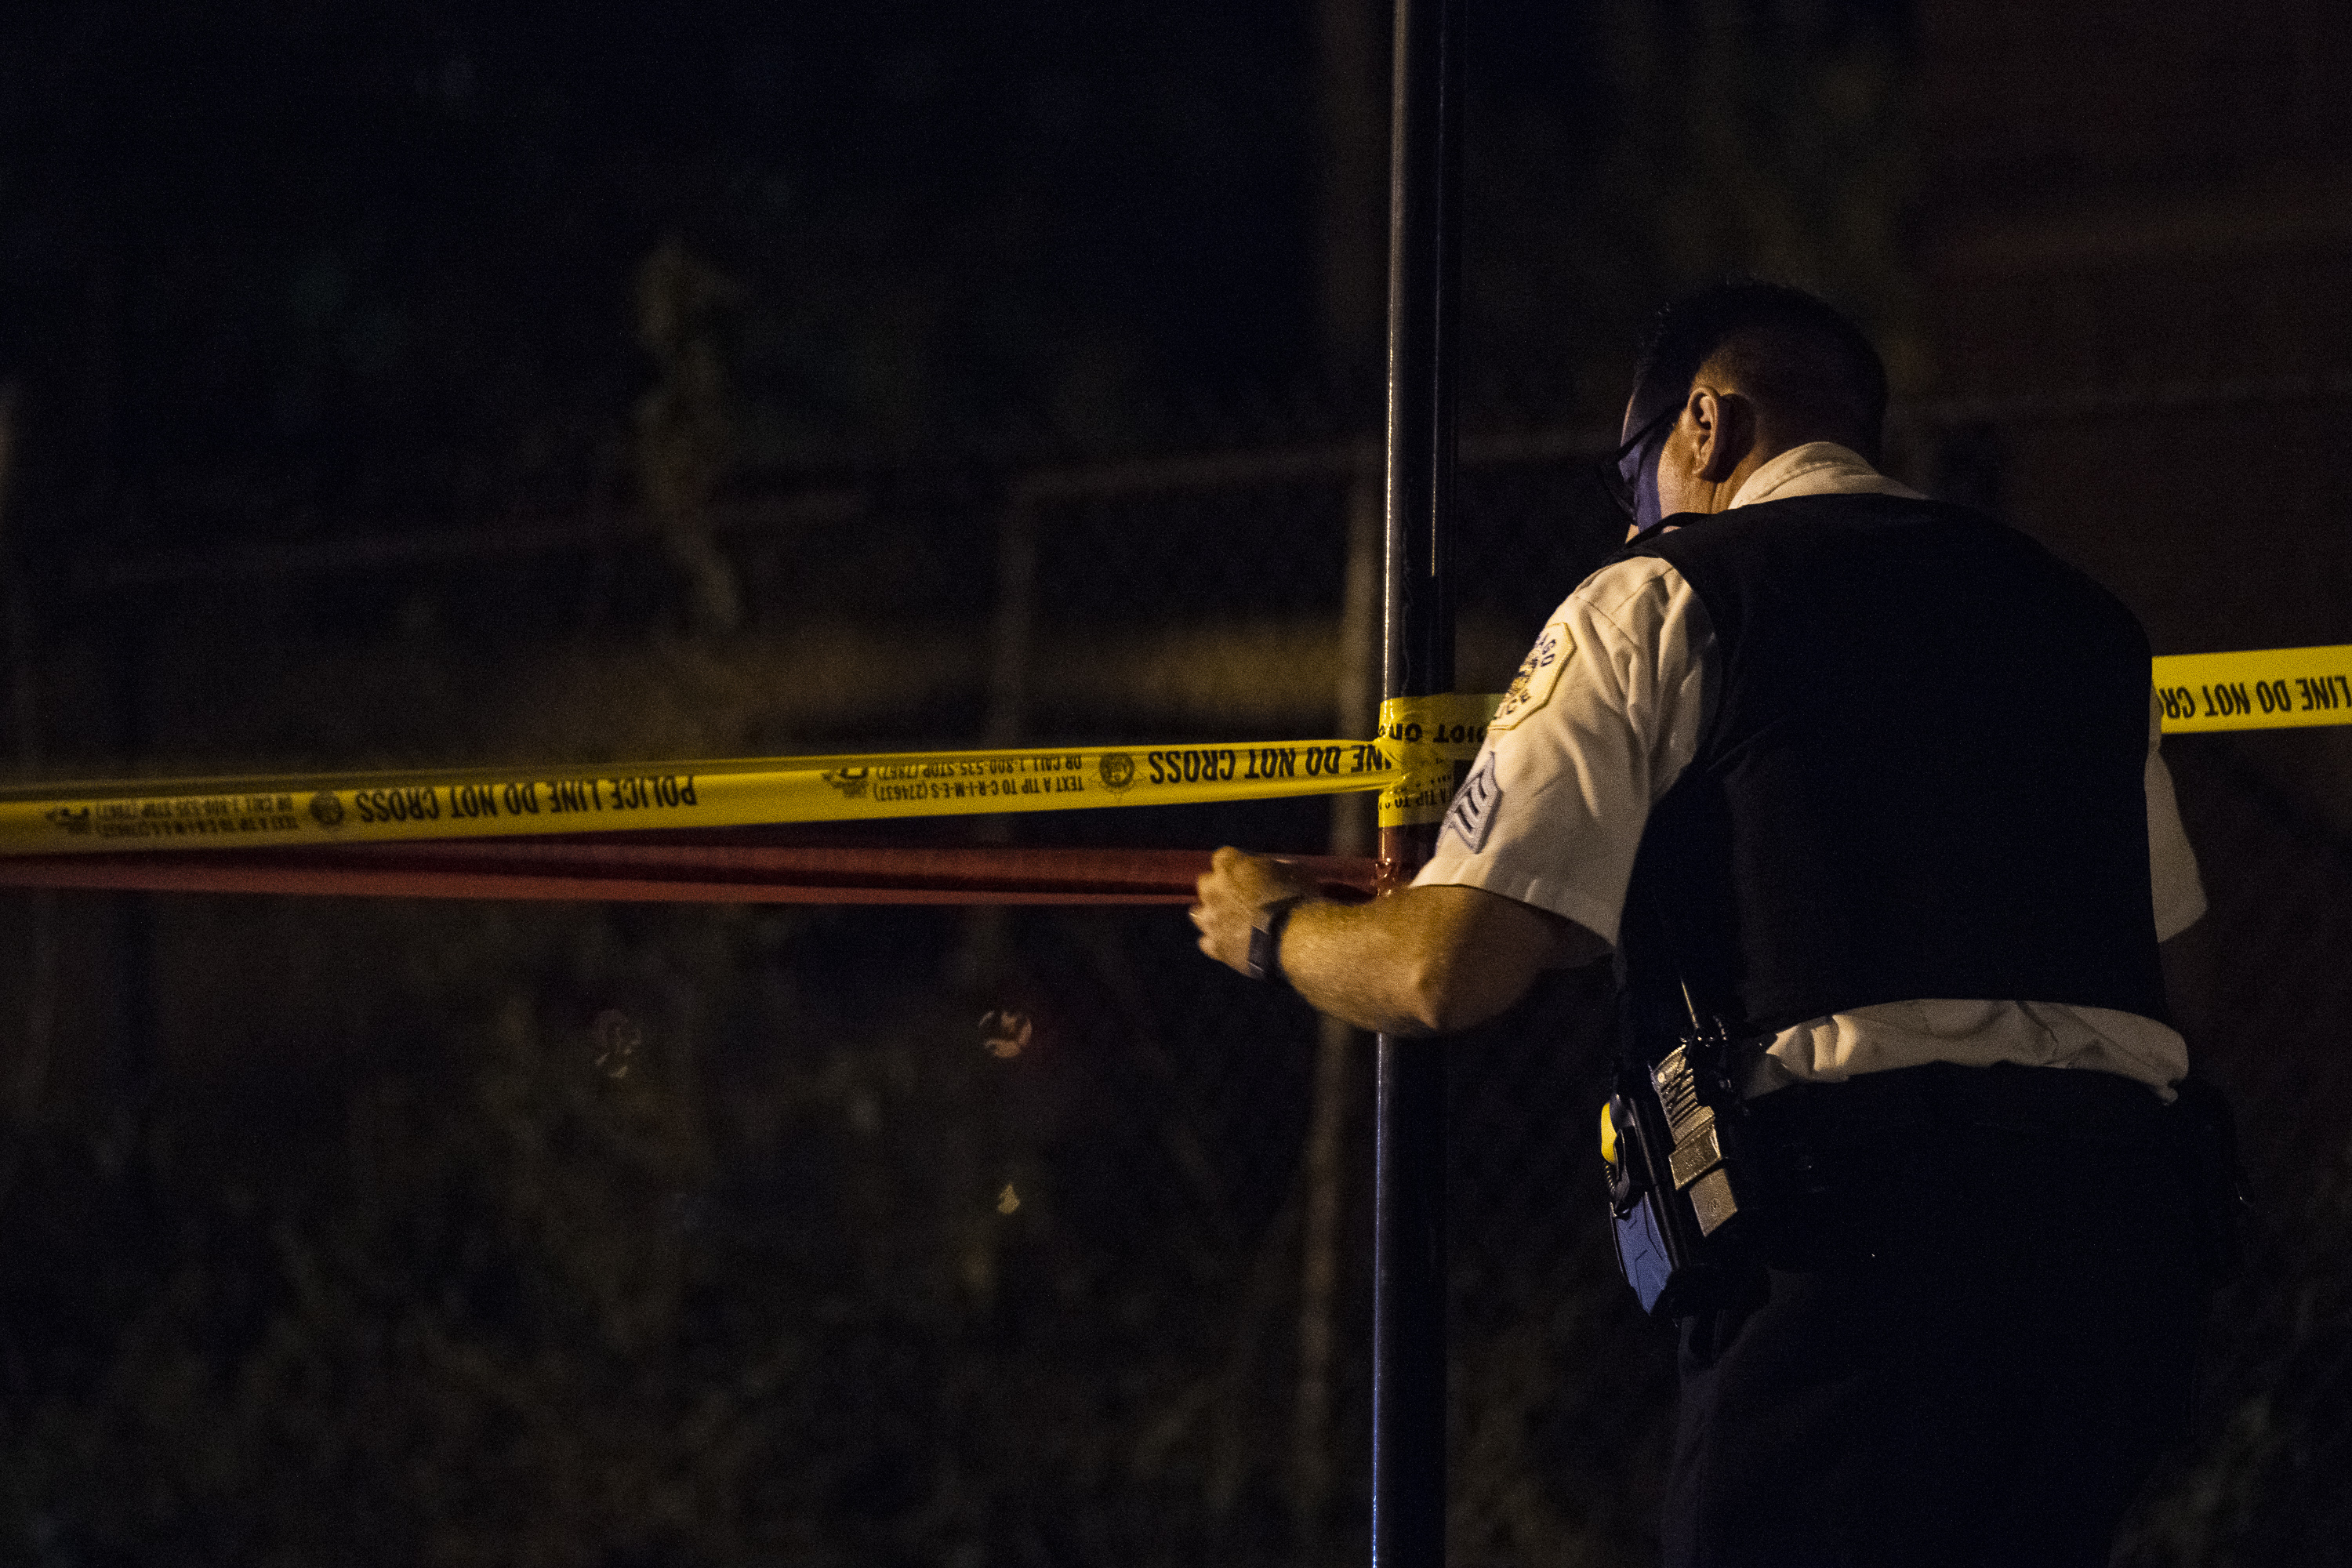 Three people were killed and nine others wounded in shootings May 17, 2021 in Chicago.